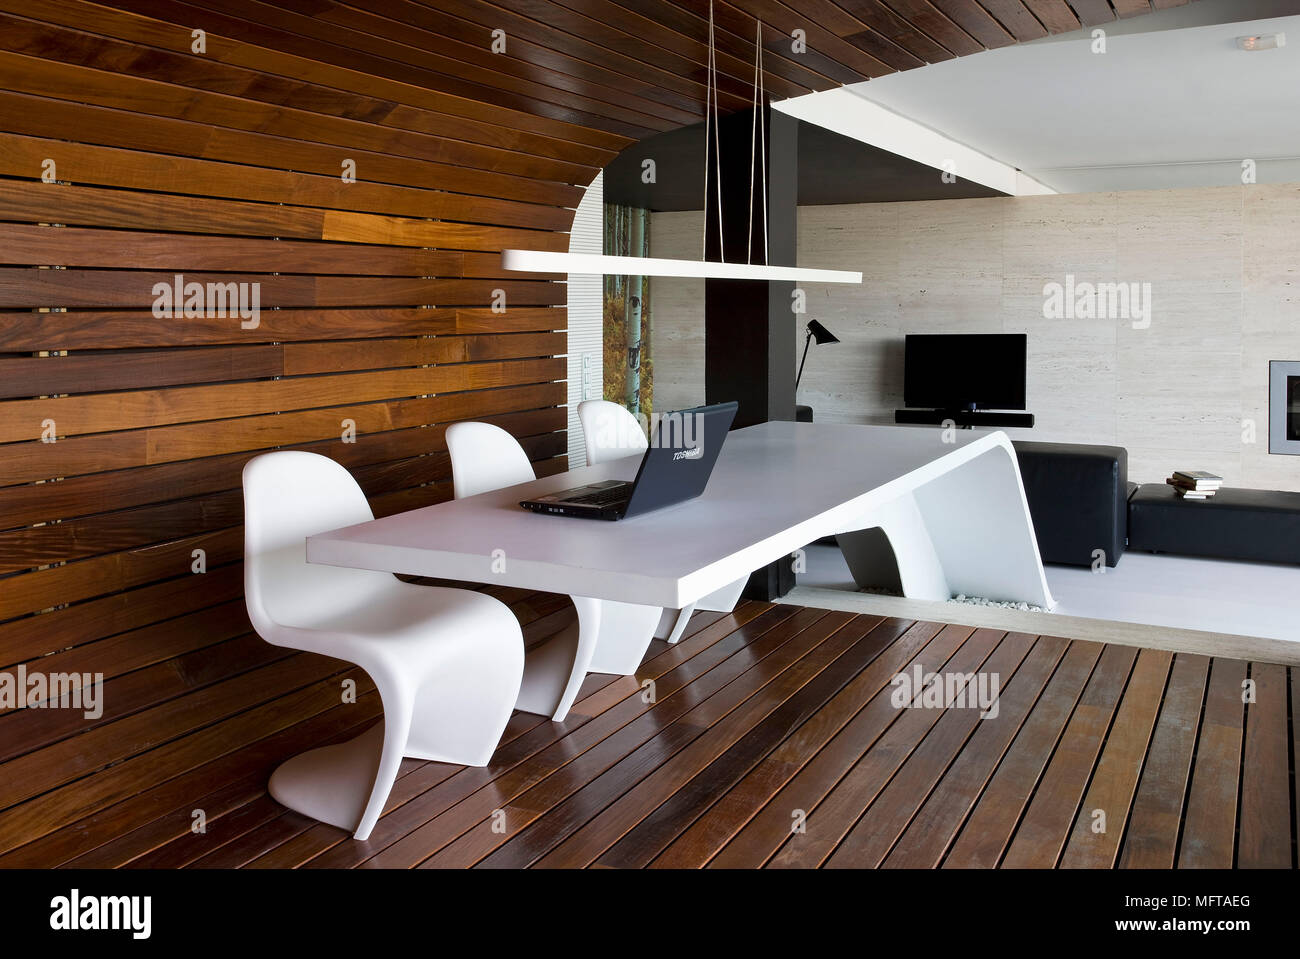 Verner Panton Chaise De Salle à Manger à Table En Bois Blanc Moderne Chambre Lambrissée Photo Stock Alamy